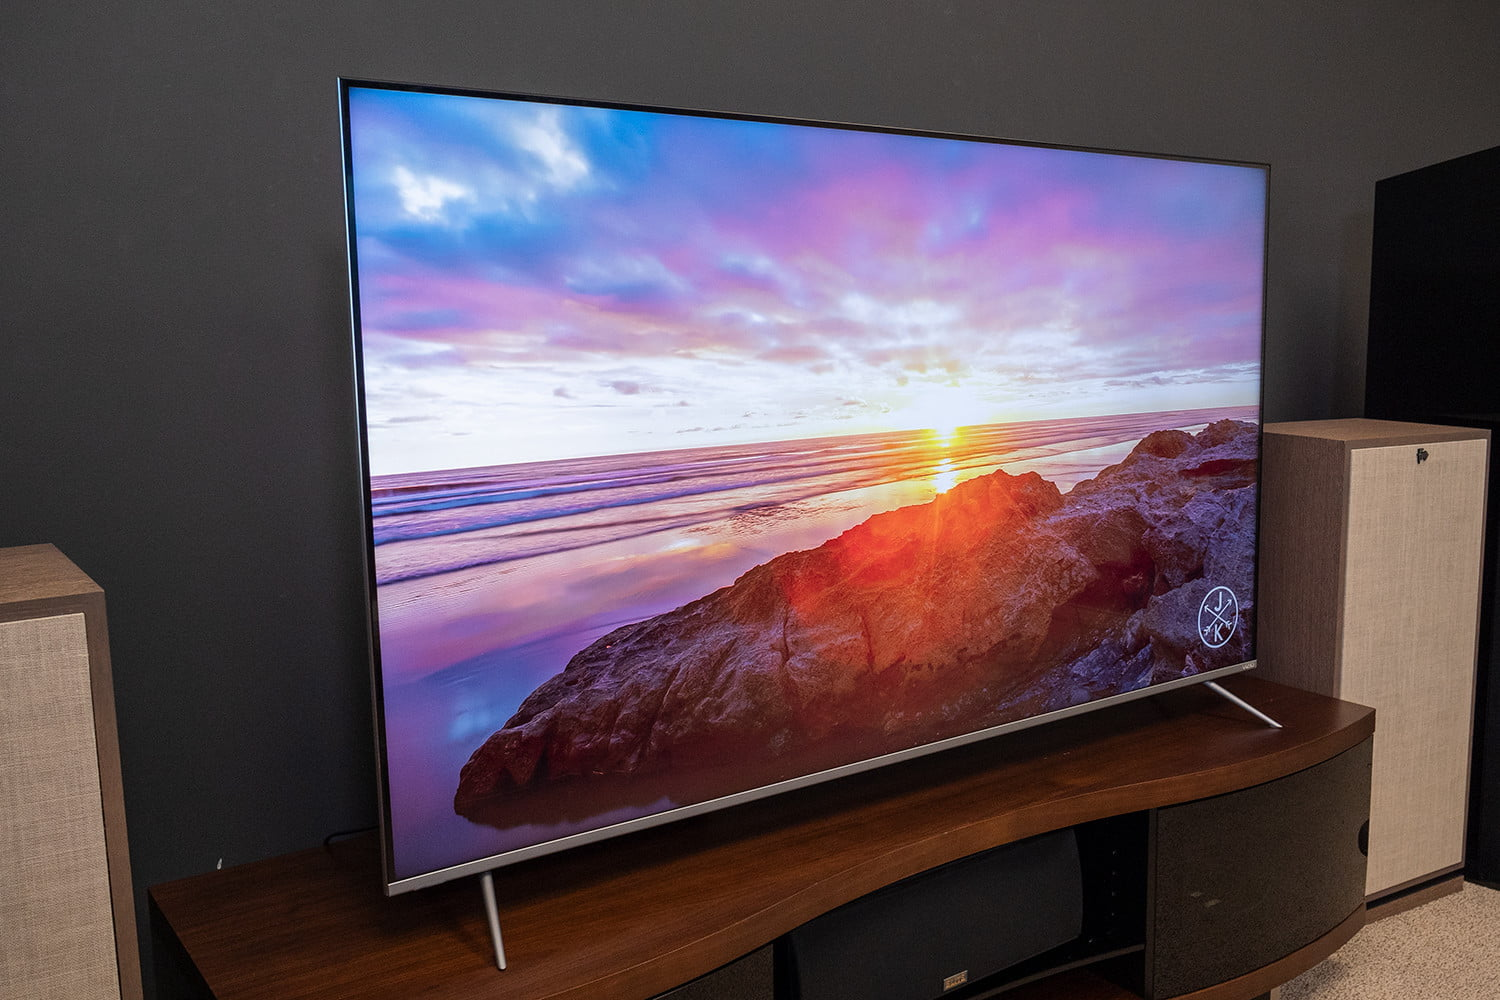 For picture quality on a budget, Vizio's new P-Series is absolutely  unbeatable